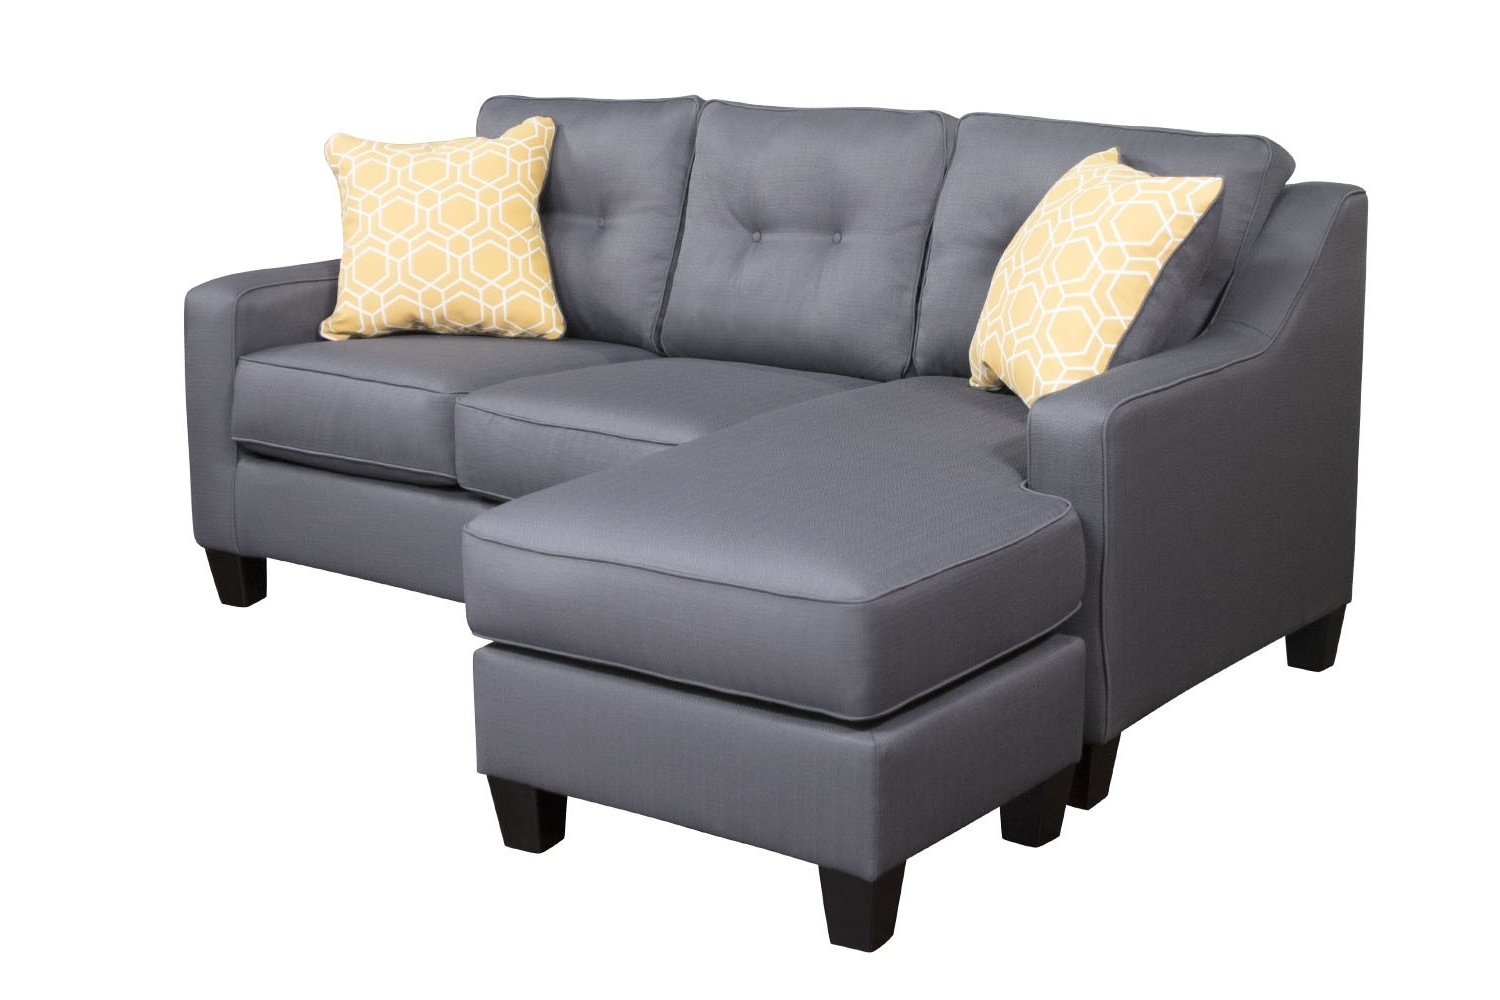 Mor Furniture For Less Inside 2017 Gray Couches With Chaise (View 9 of 15)